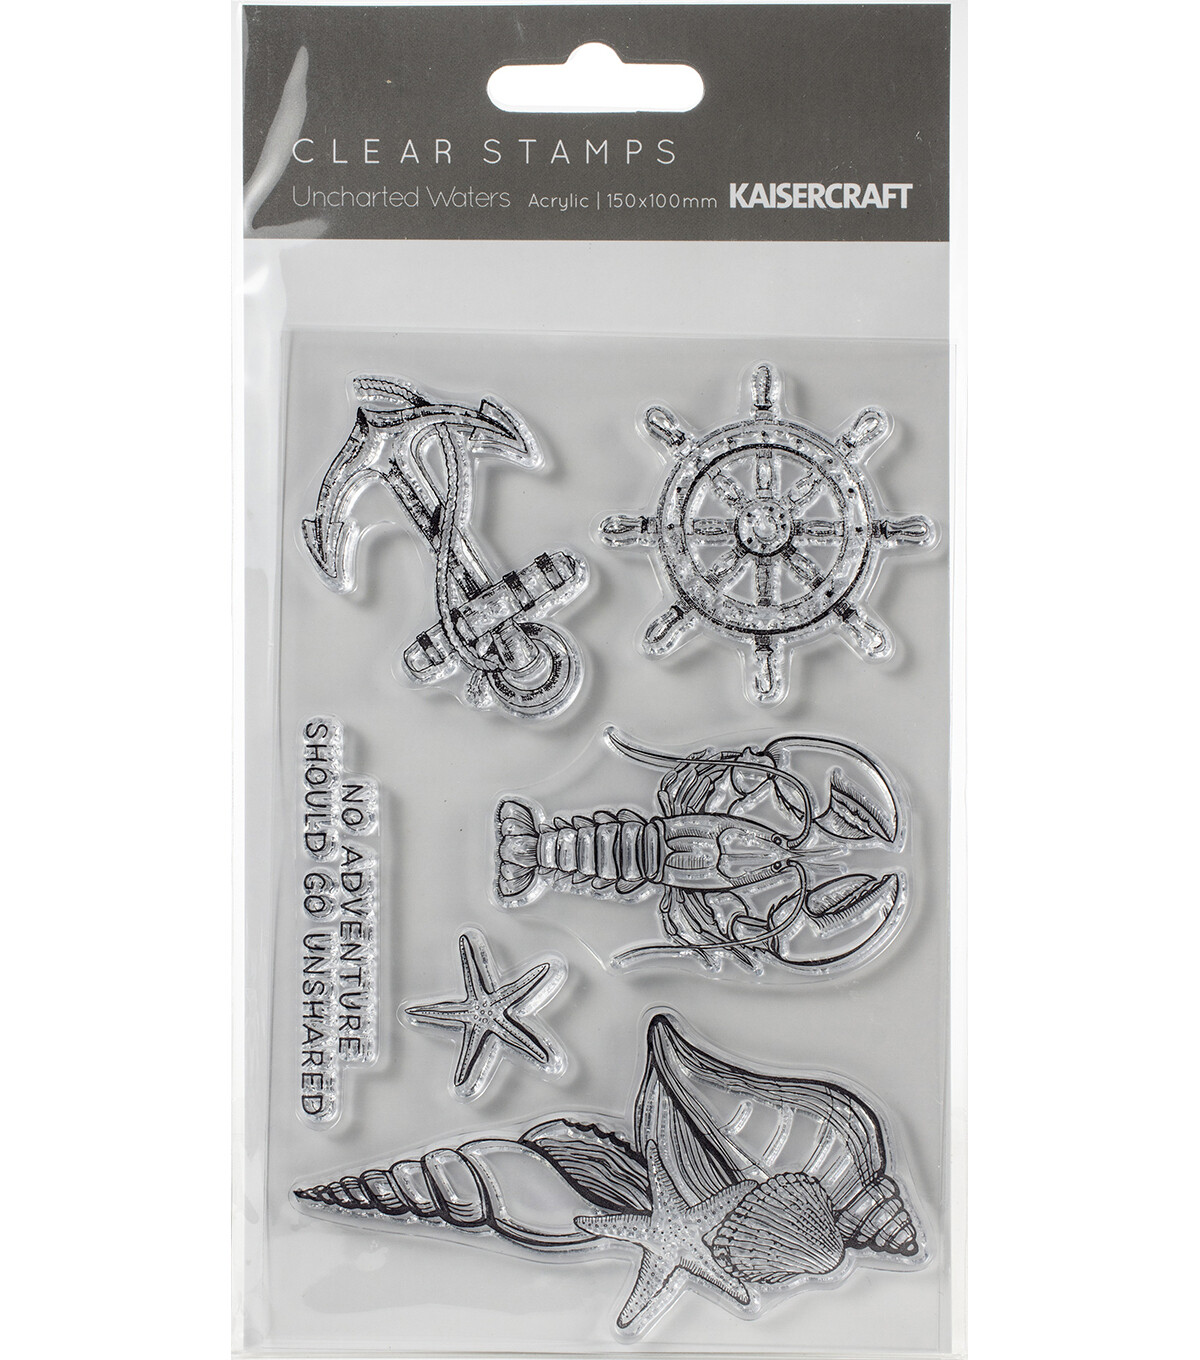 Uncharted Waters clear stamps